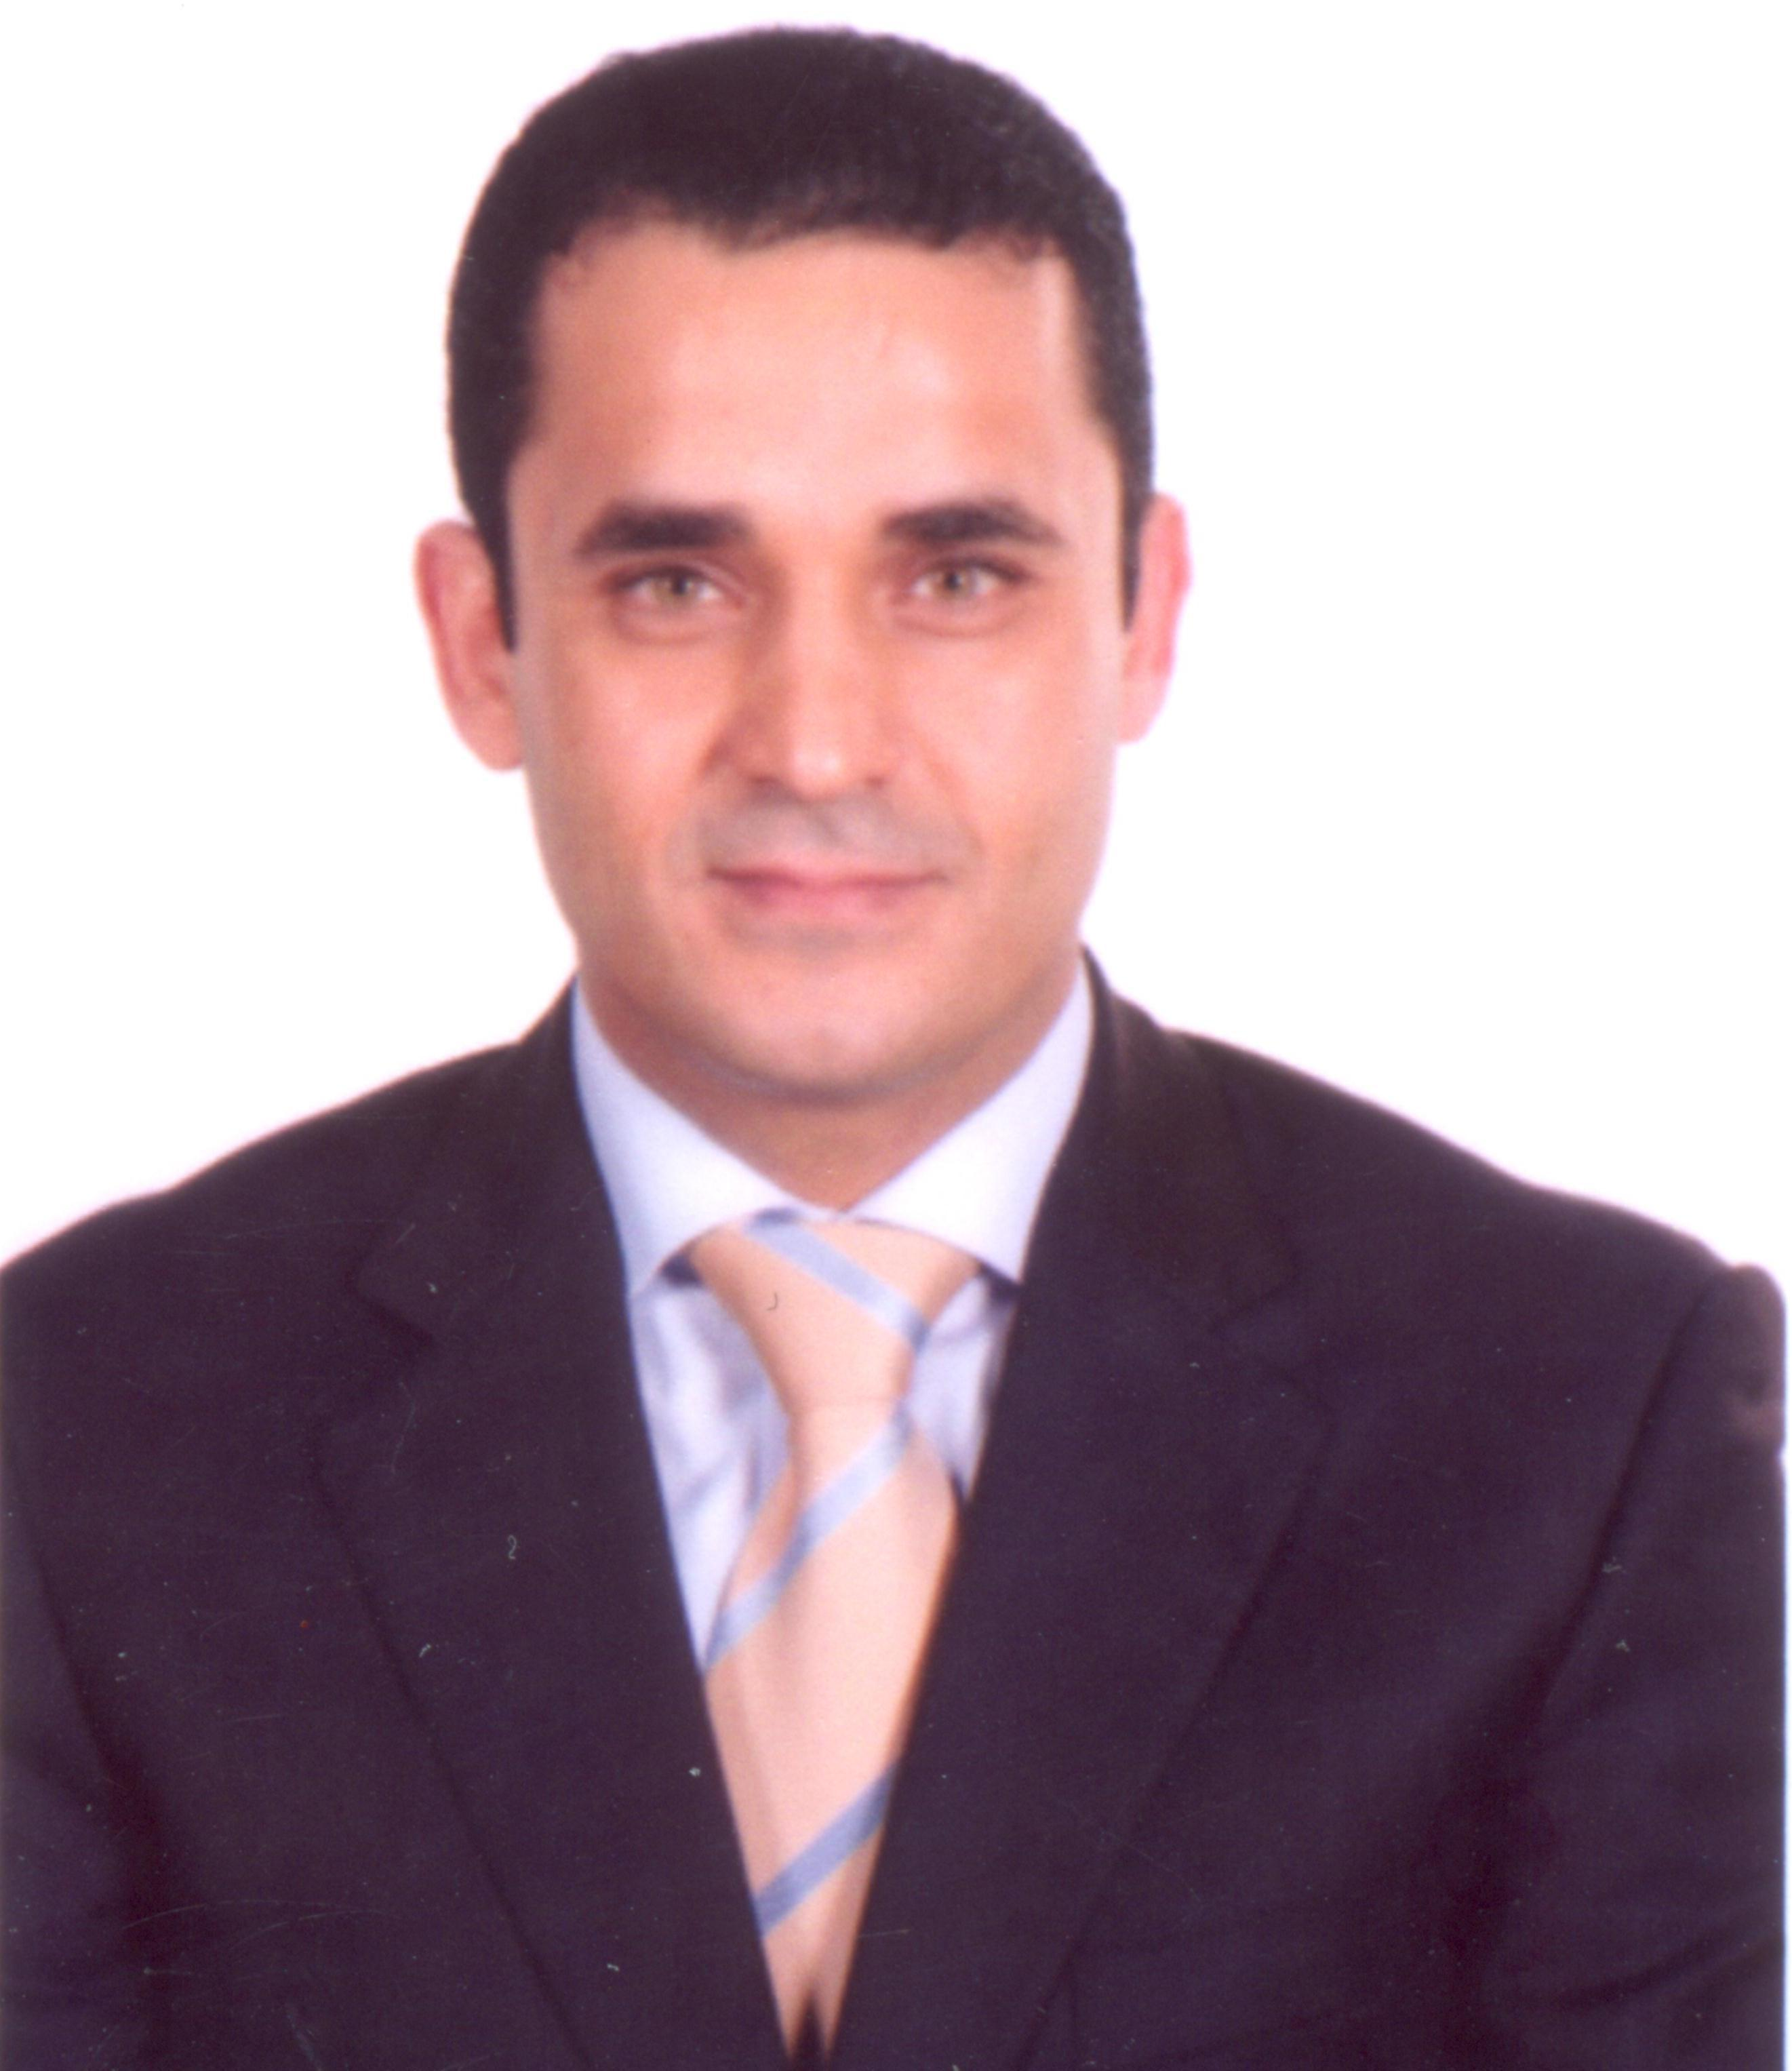 Haney Asaad (participant)